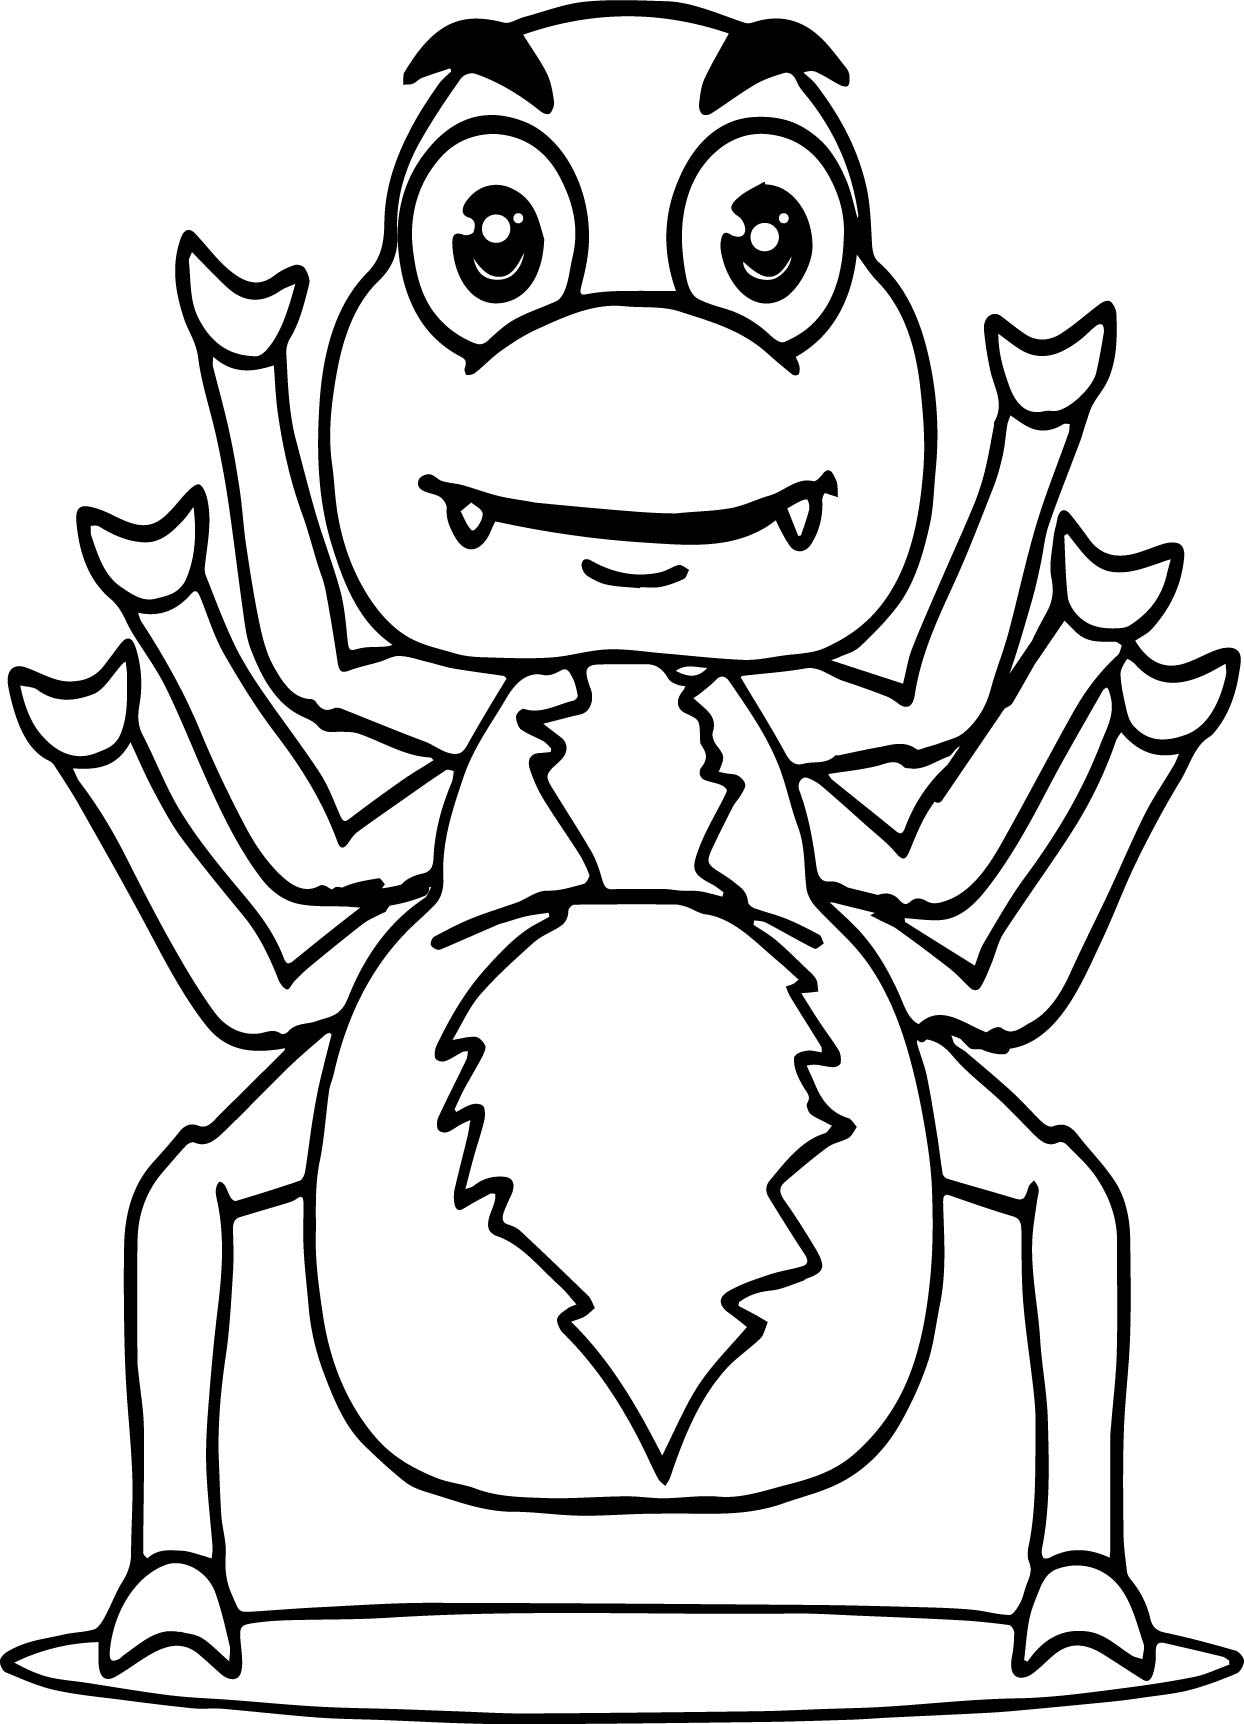 Anansi Six Hand Coloring Page